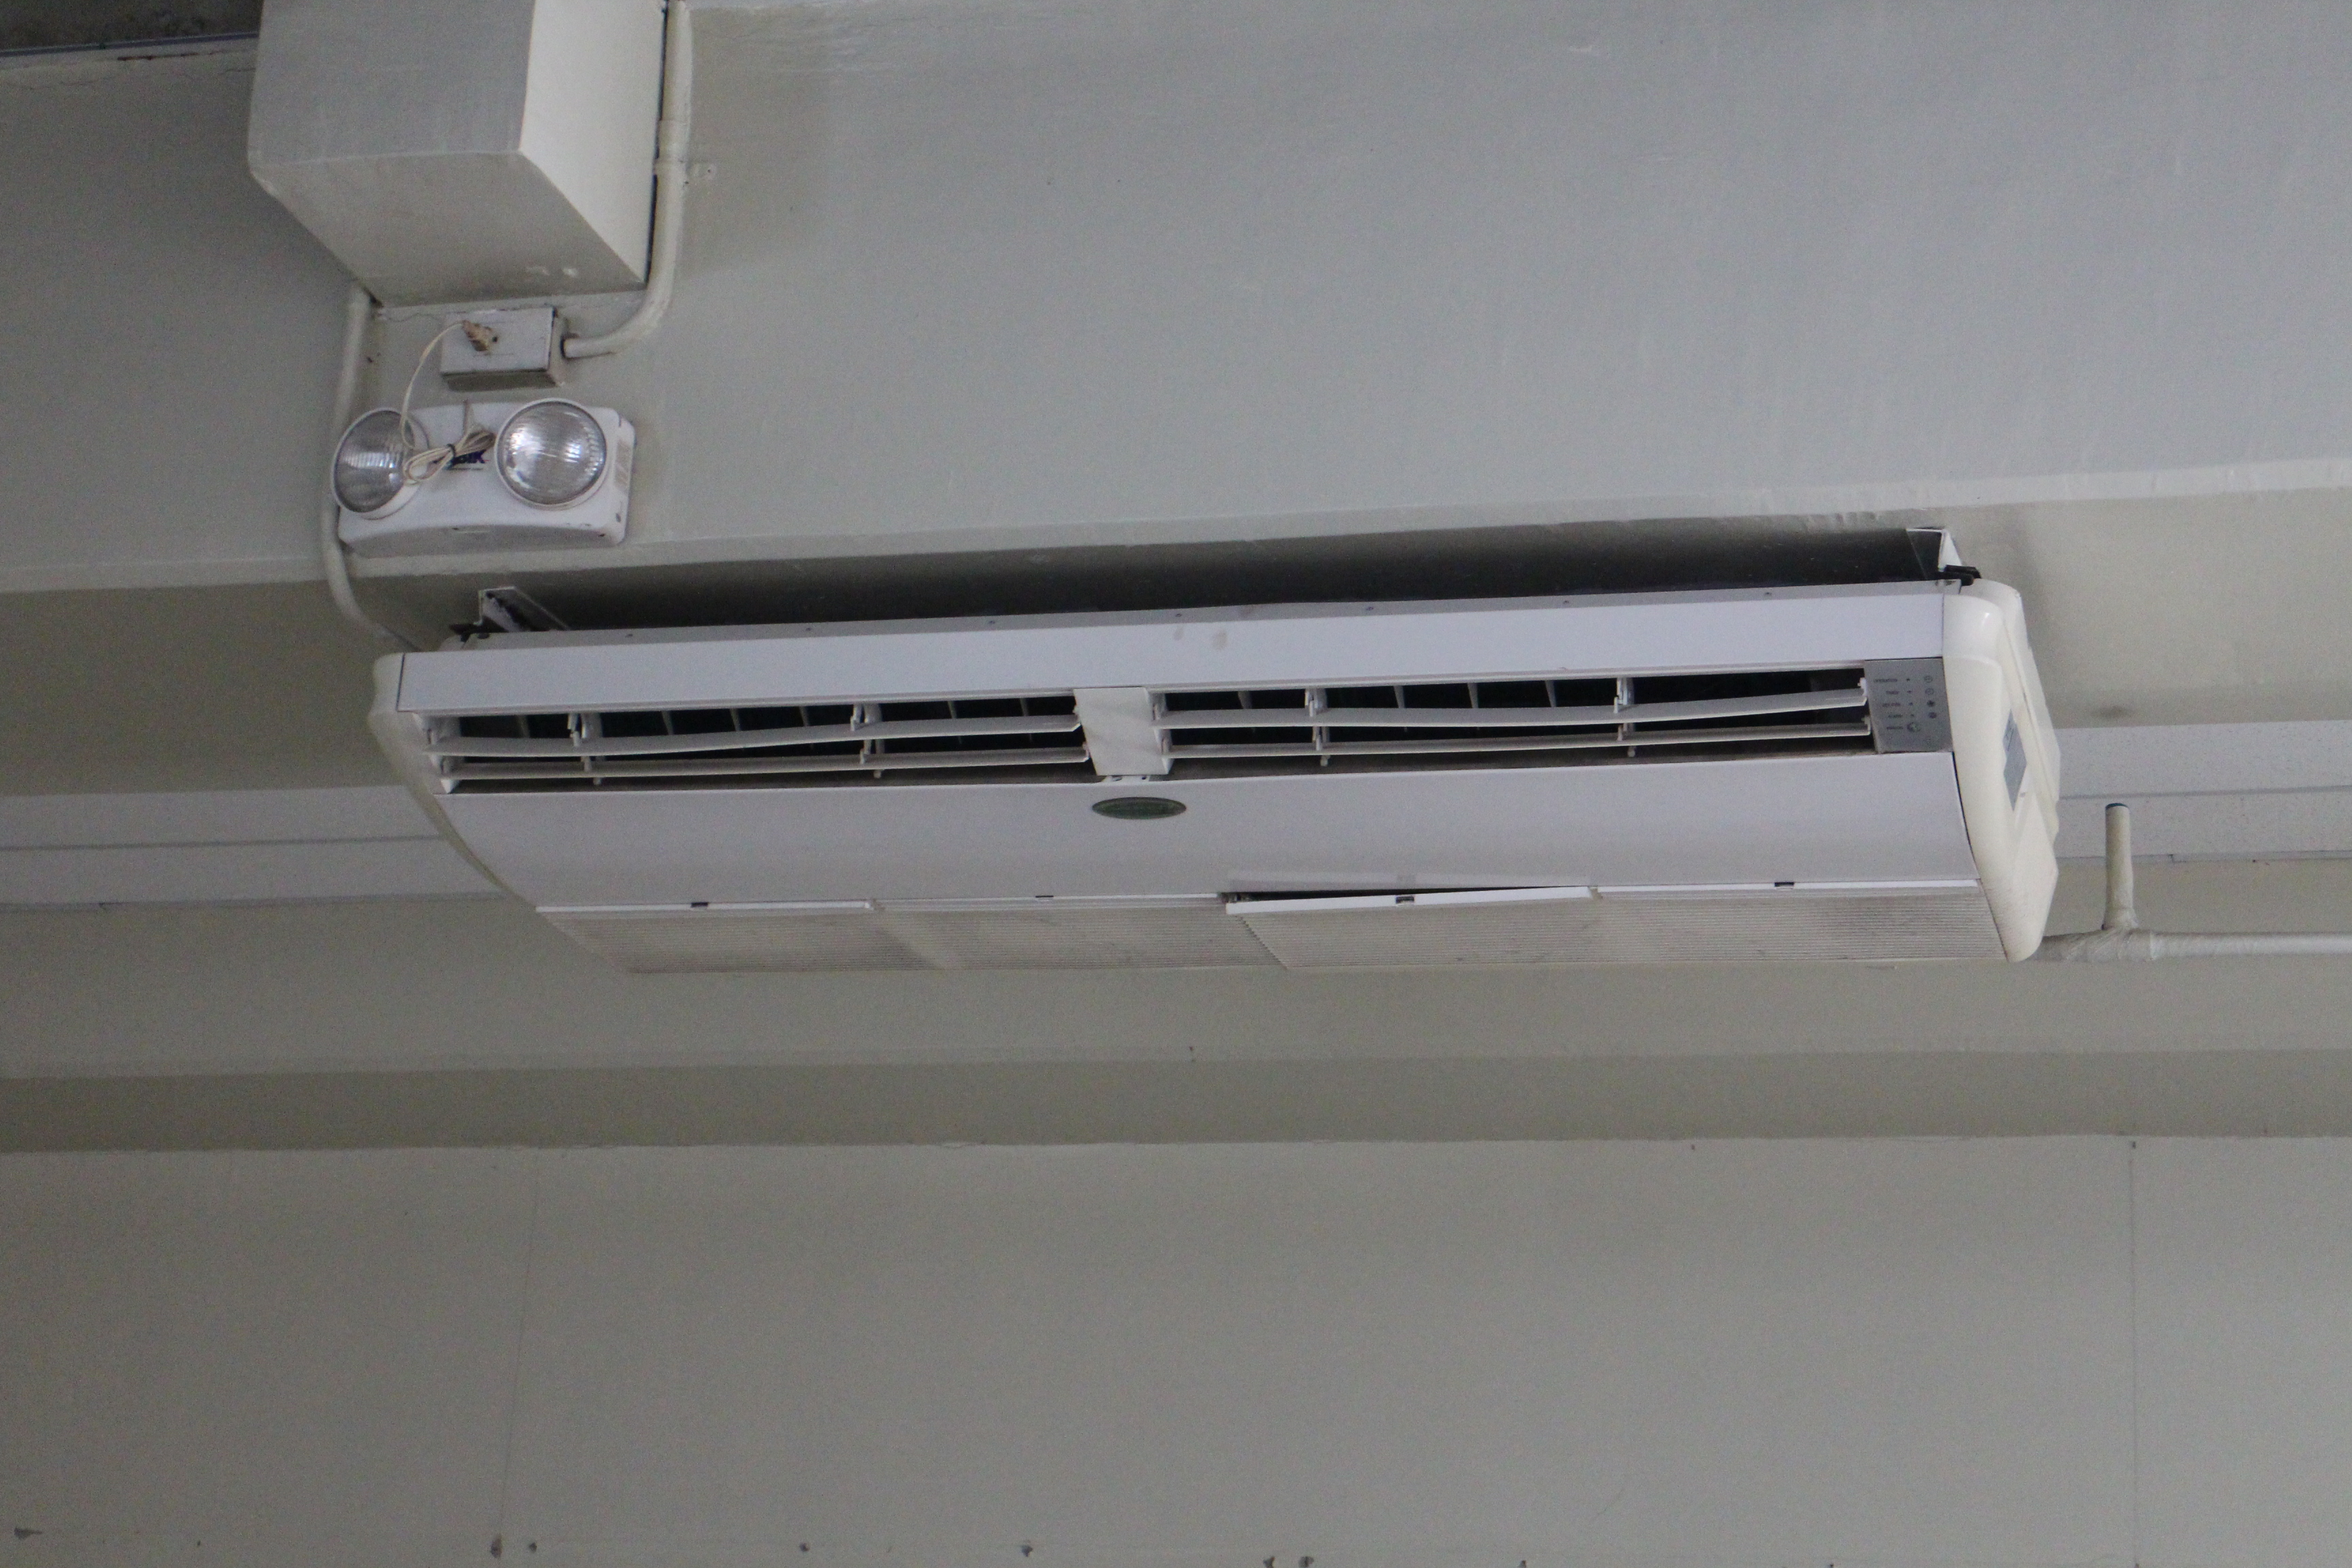 Everest Aircon 5 tons Ceiling Type Inverter Second hand (negotiable) photo